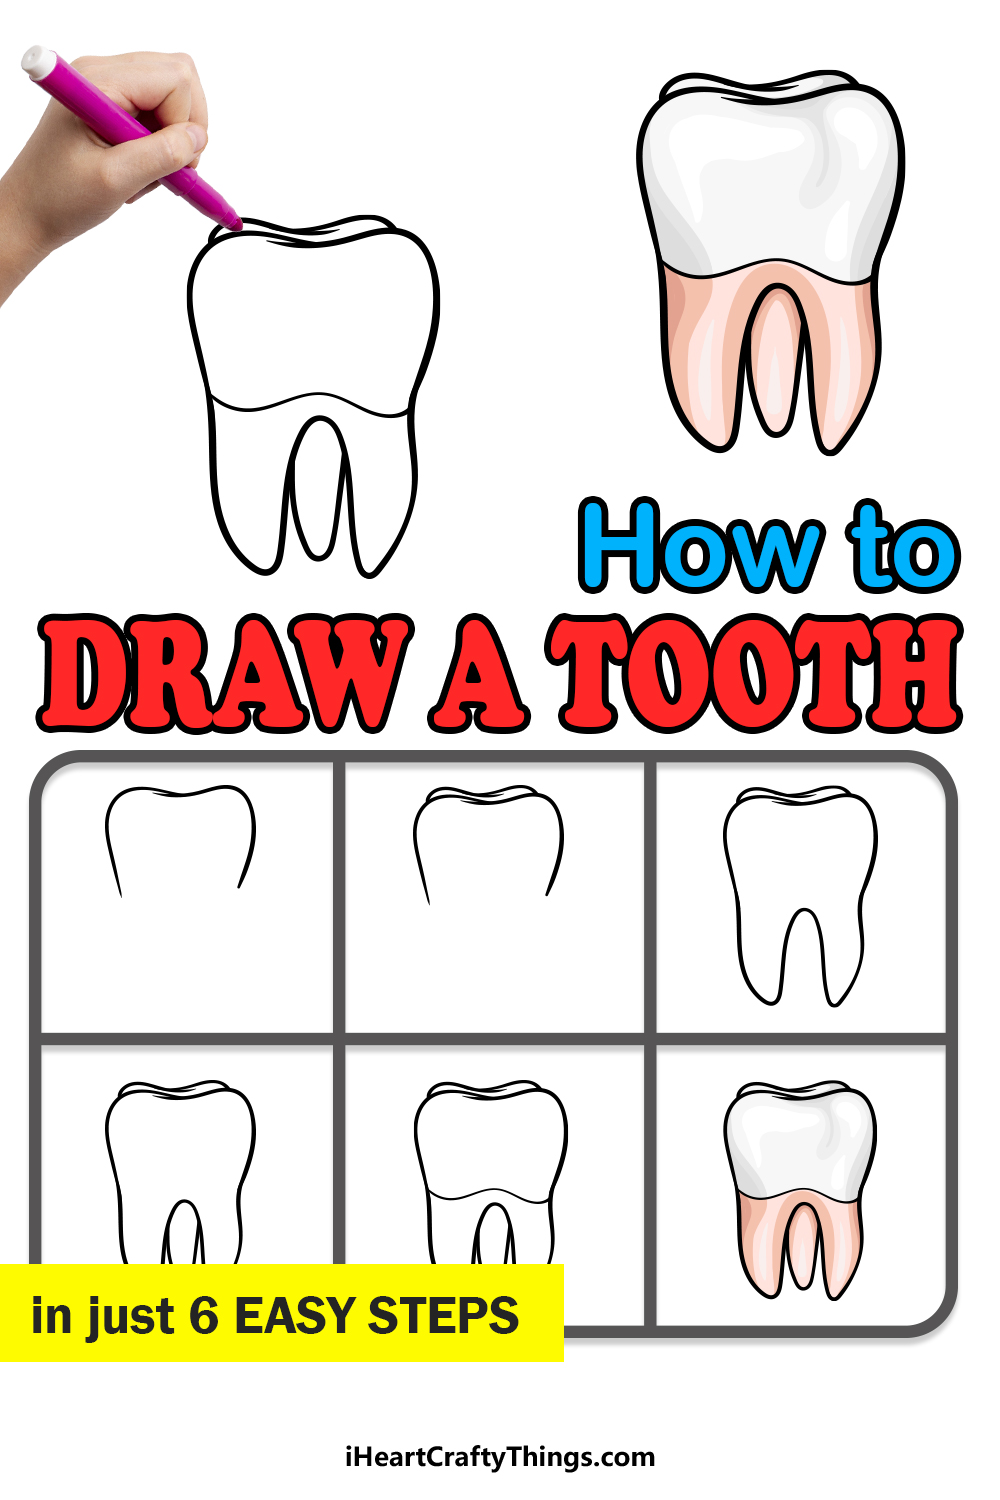 how to draw a tooth in 6 easy steps